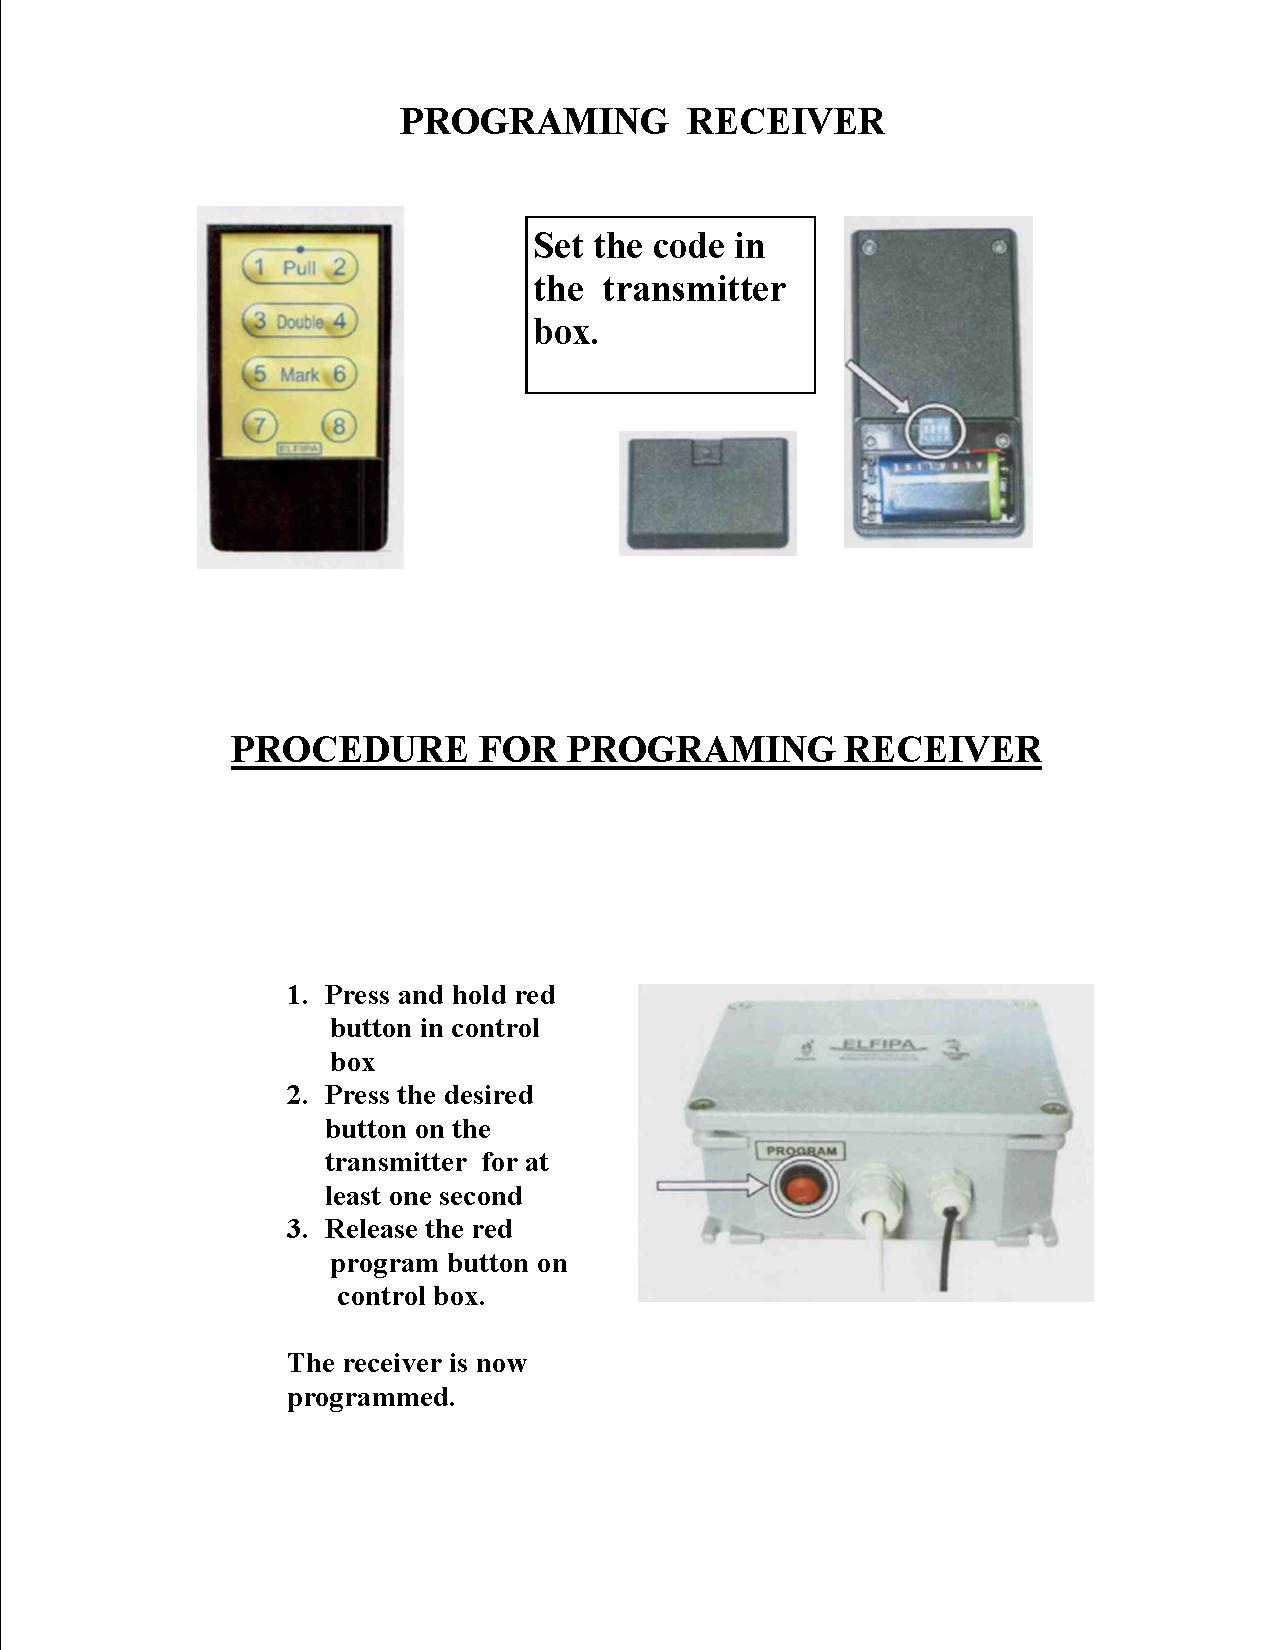 Briley Mfg Other Manuals And Instructions Wiring 2 Schematics In One Box Diagram Long Range Testa Rosa Elfipa Ata Schematic For Trap Single Machine Programming The Receiver To Transmitter